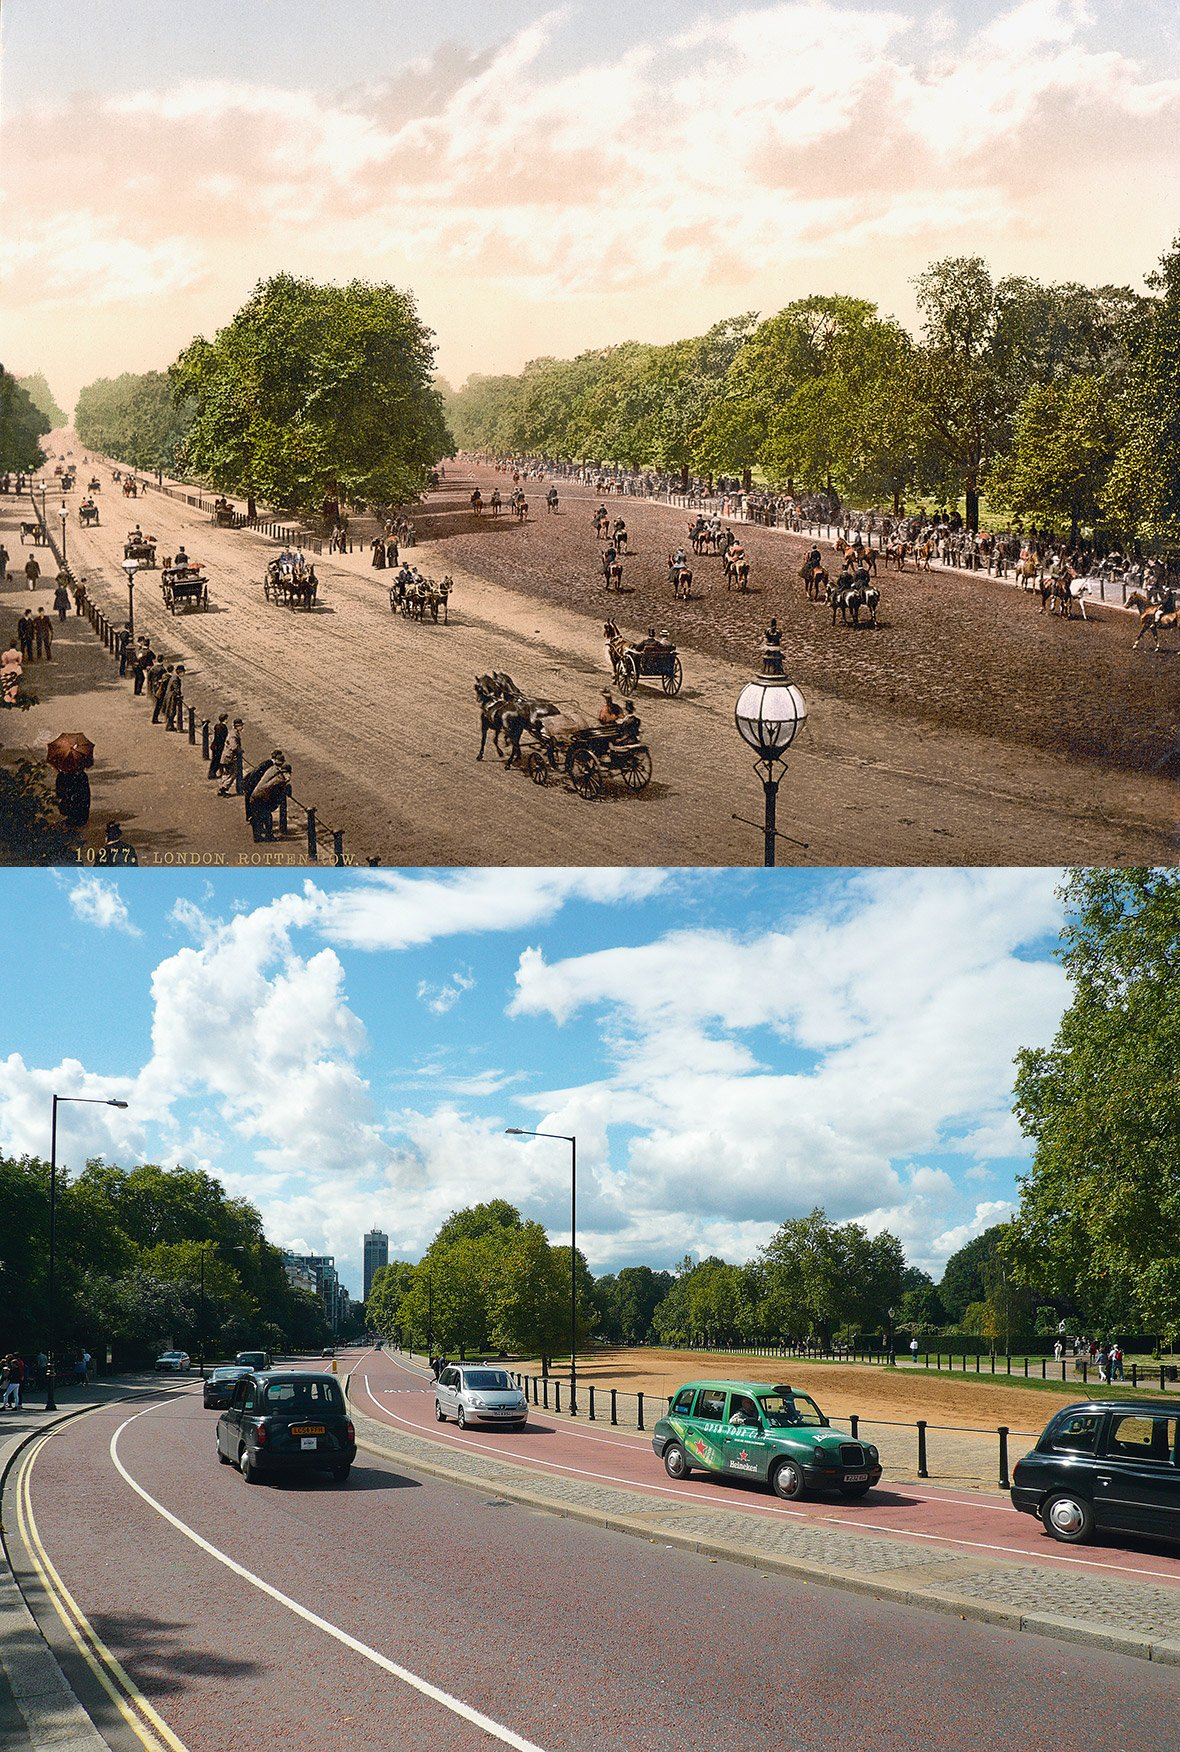 London: Then and Now